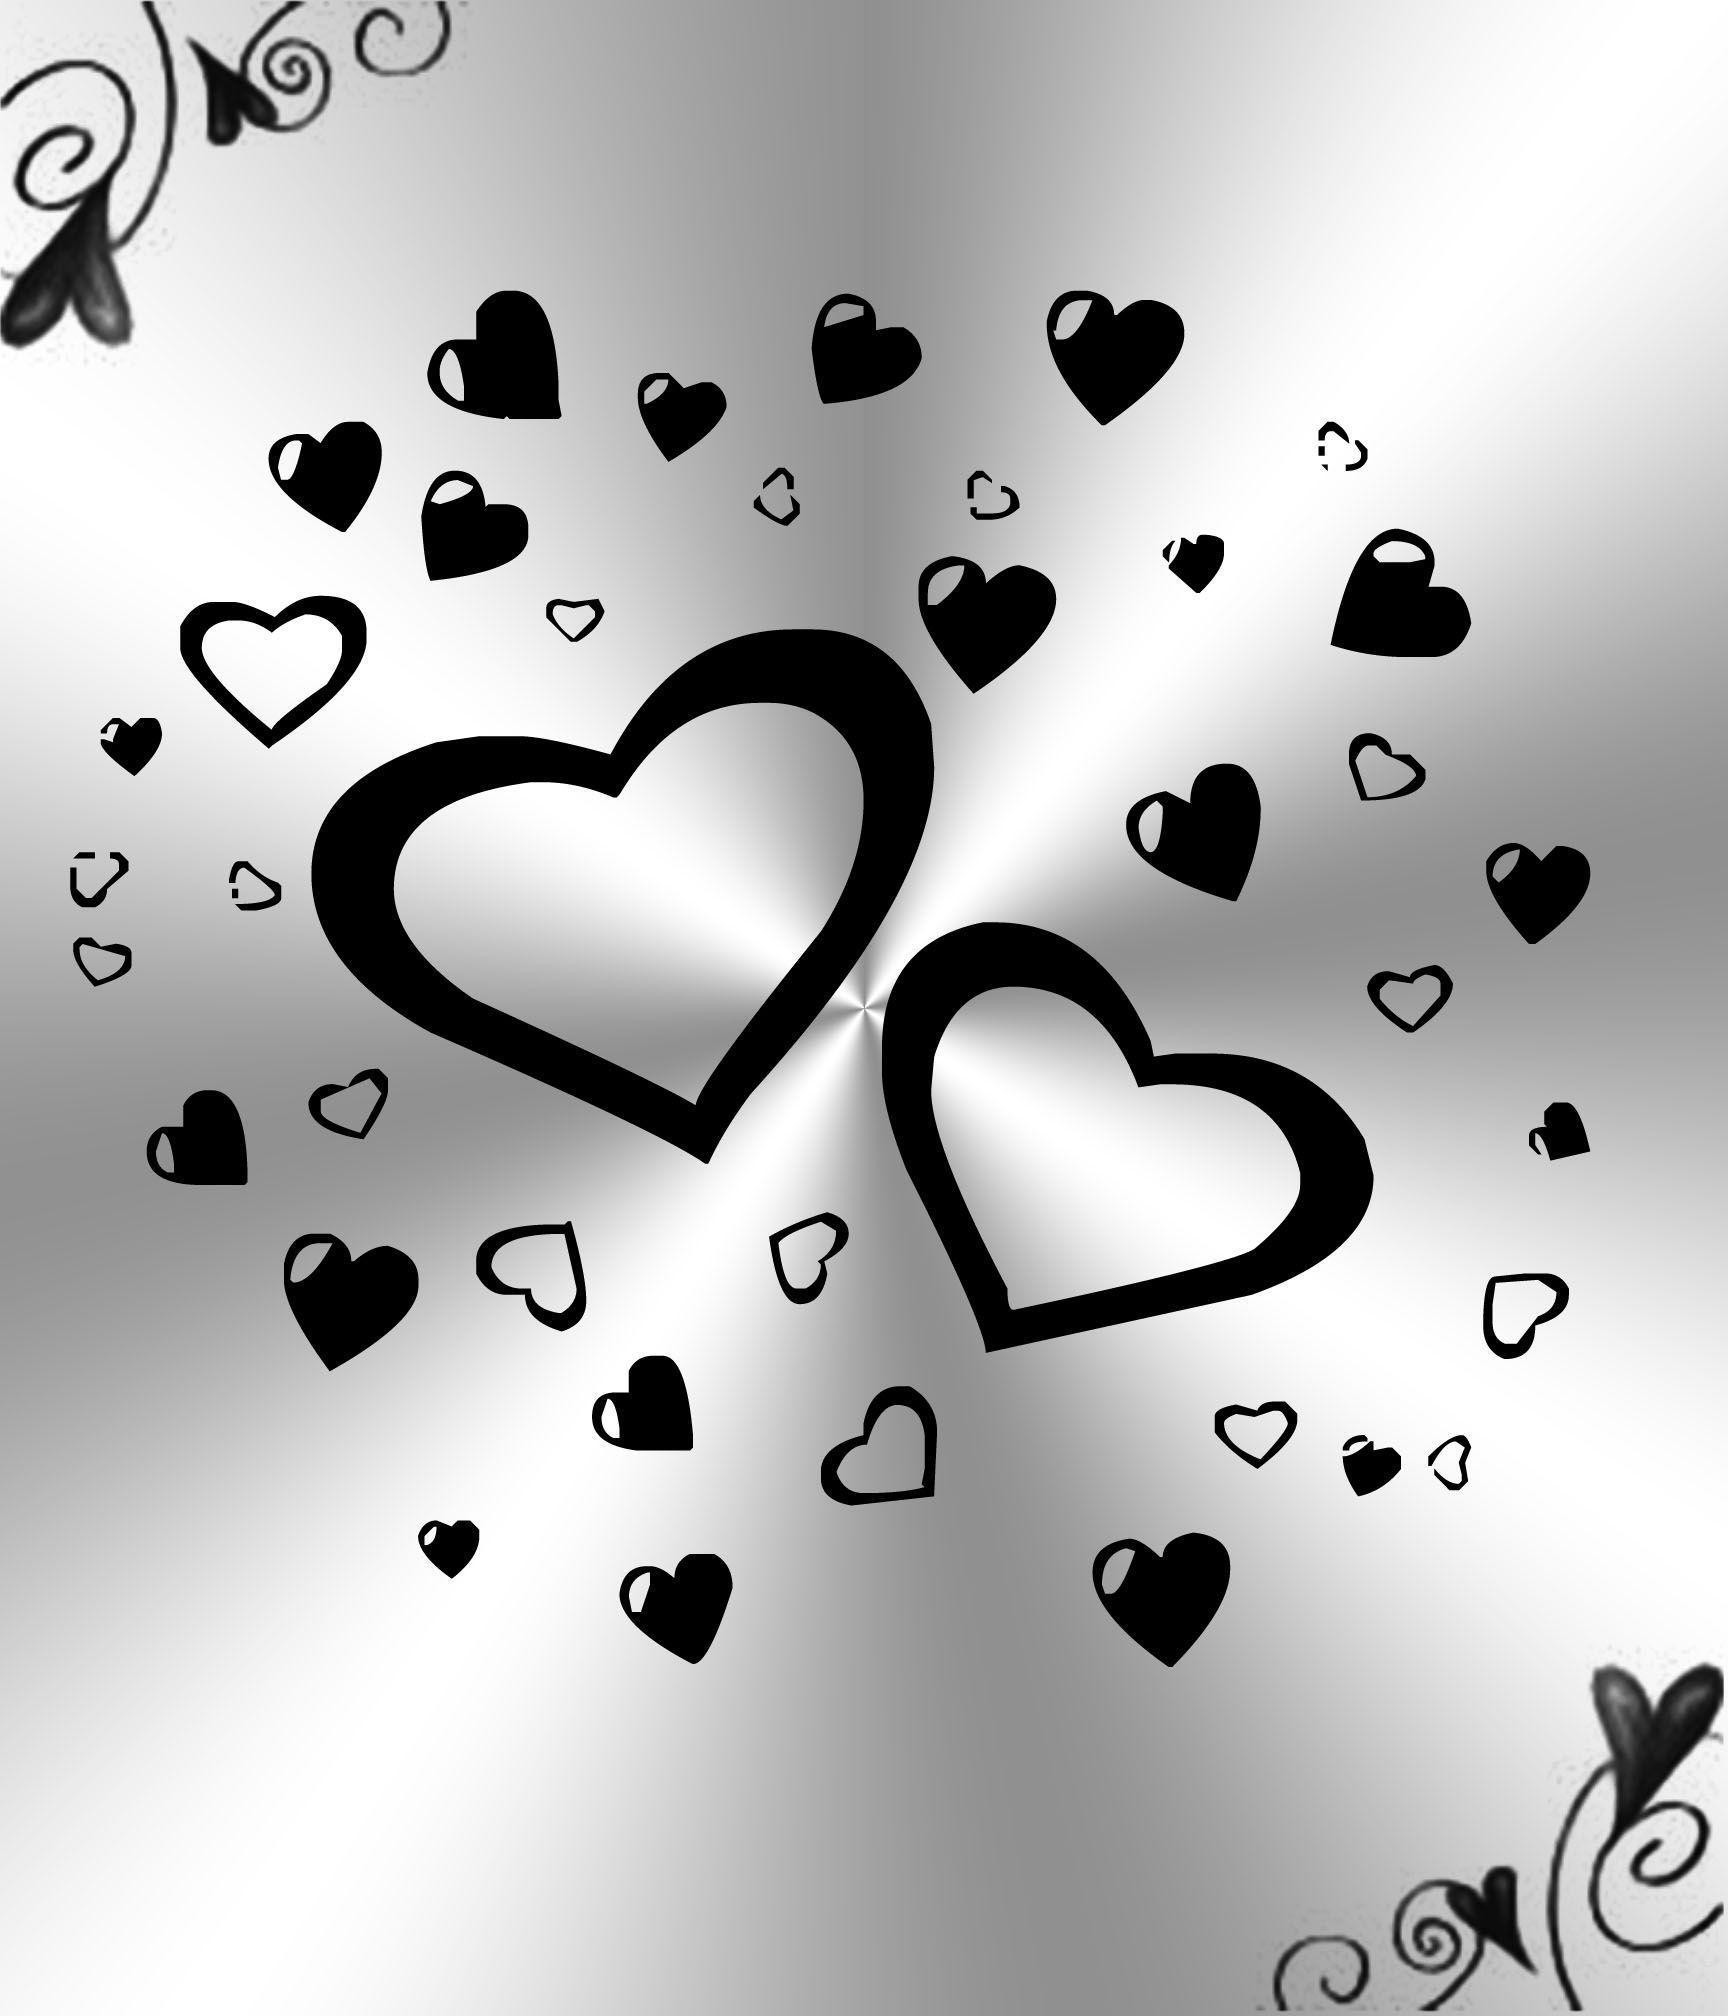 Black And White Heart Wallpaper 55 Pictures